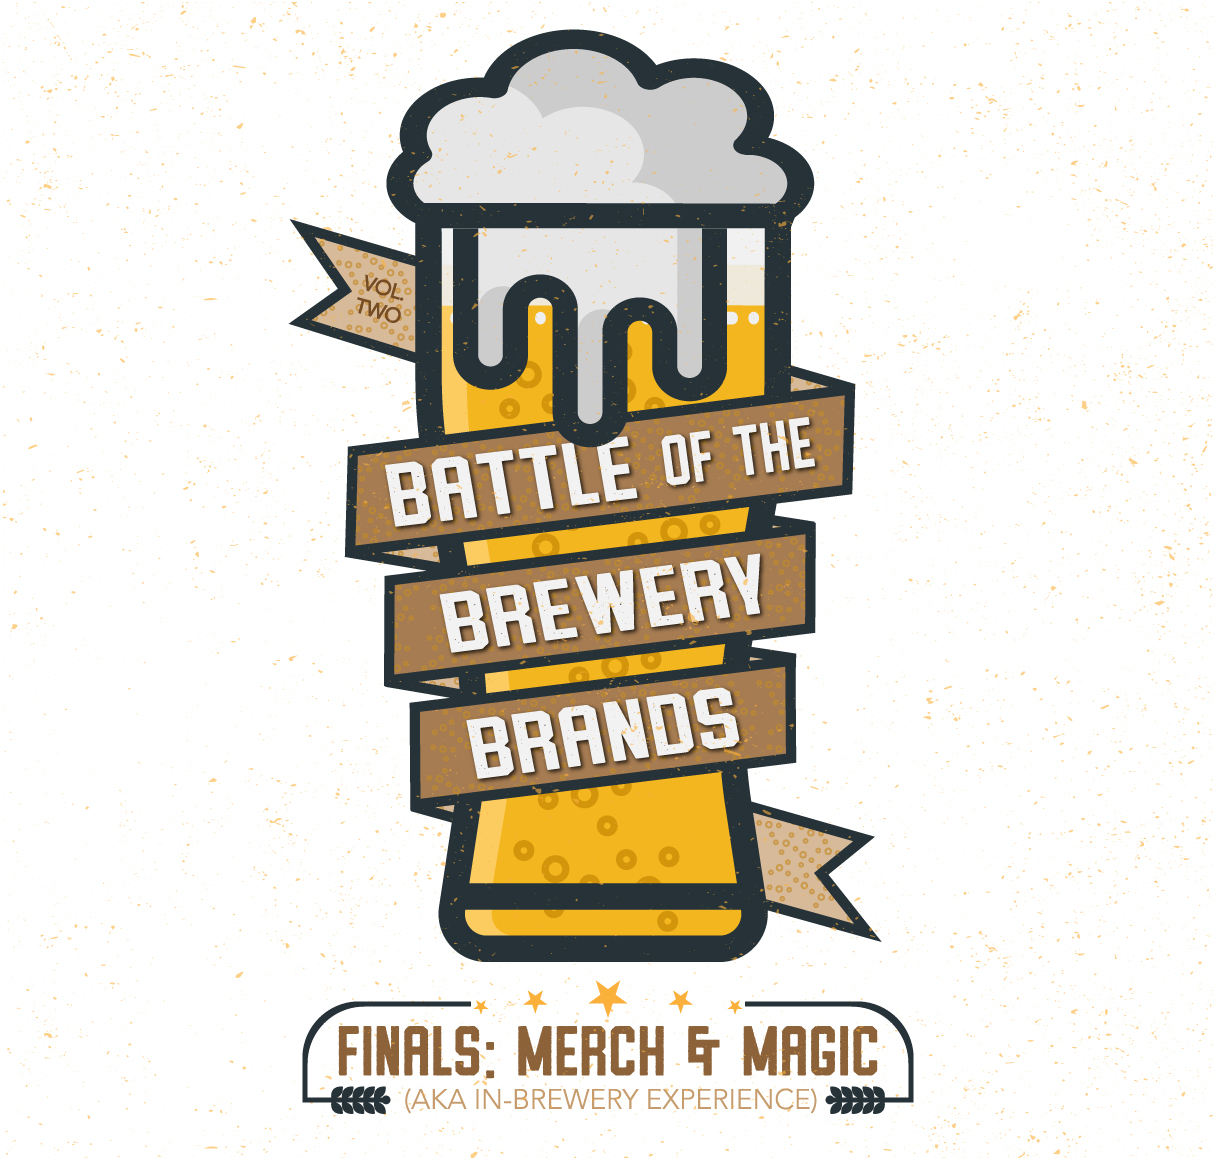 Battle of the Brewery Brands Vol 2